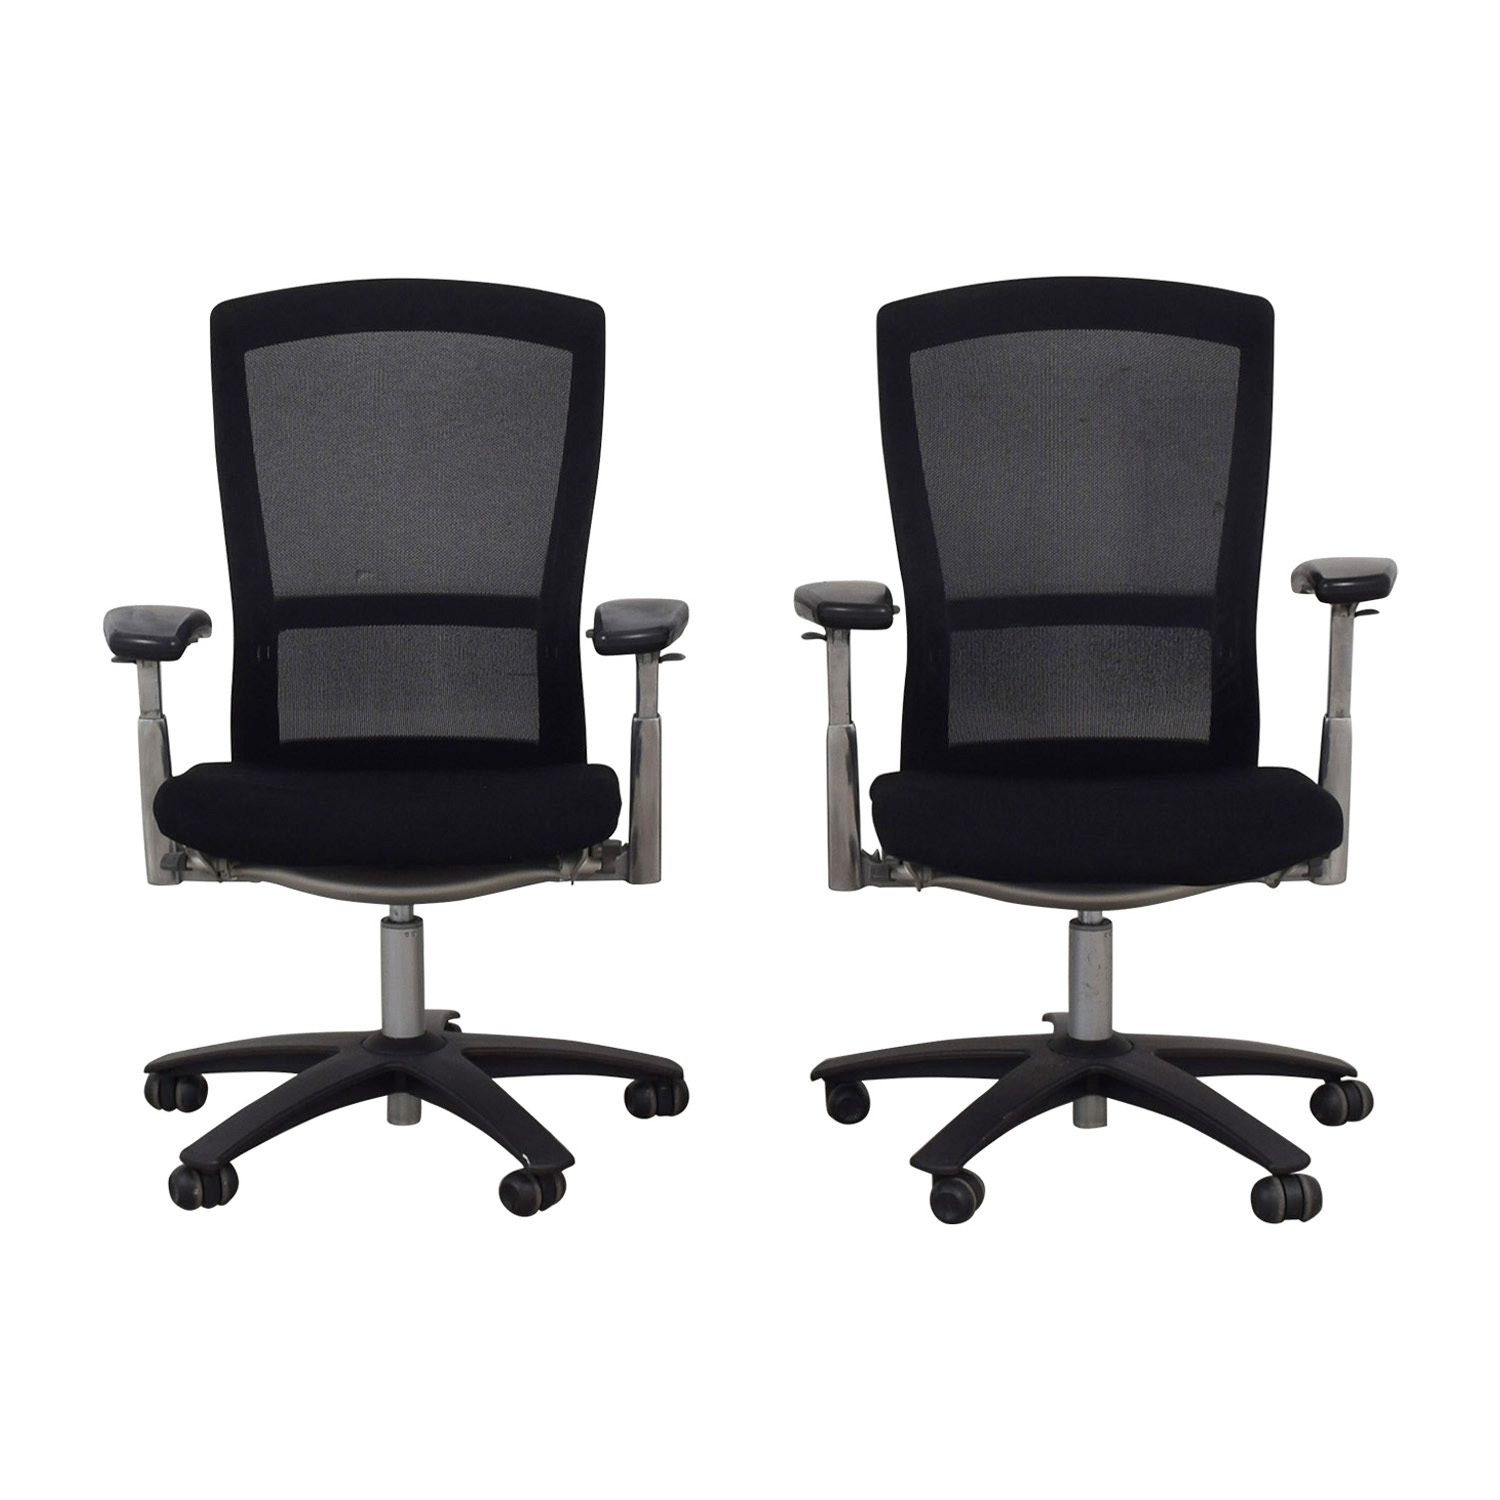 Knoll Life Black Desk Chairs / Home Office Desks